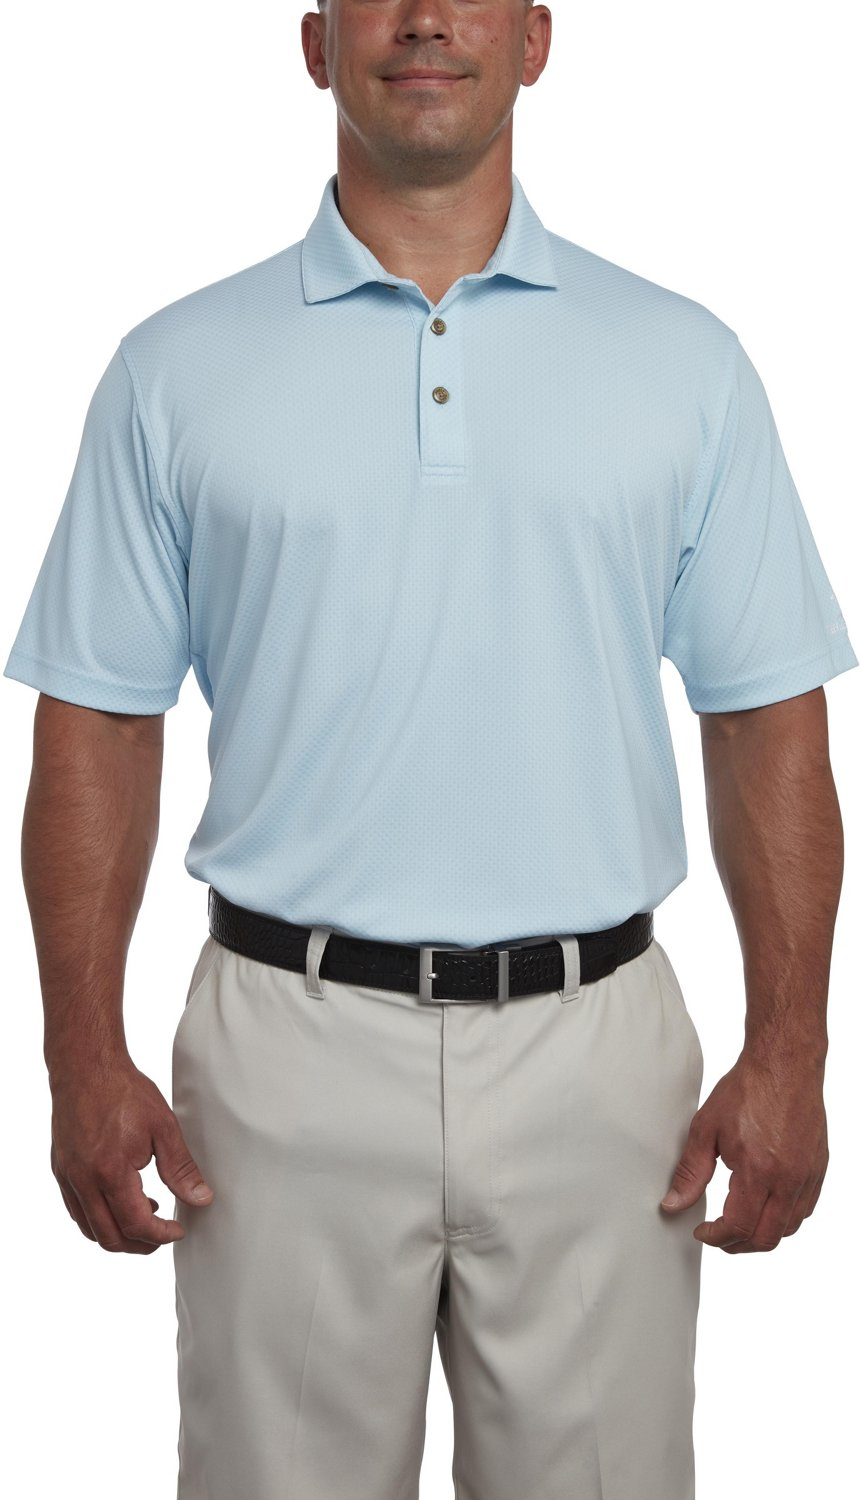 7c7e75269 Display product reviews for Pebble Beach Men s Jacquard Golf Polo Shirt